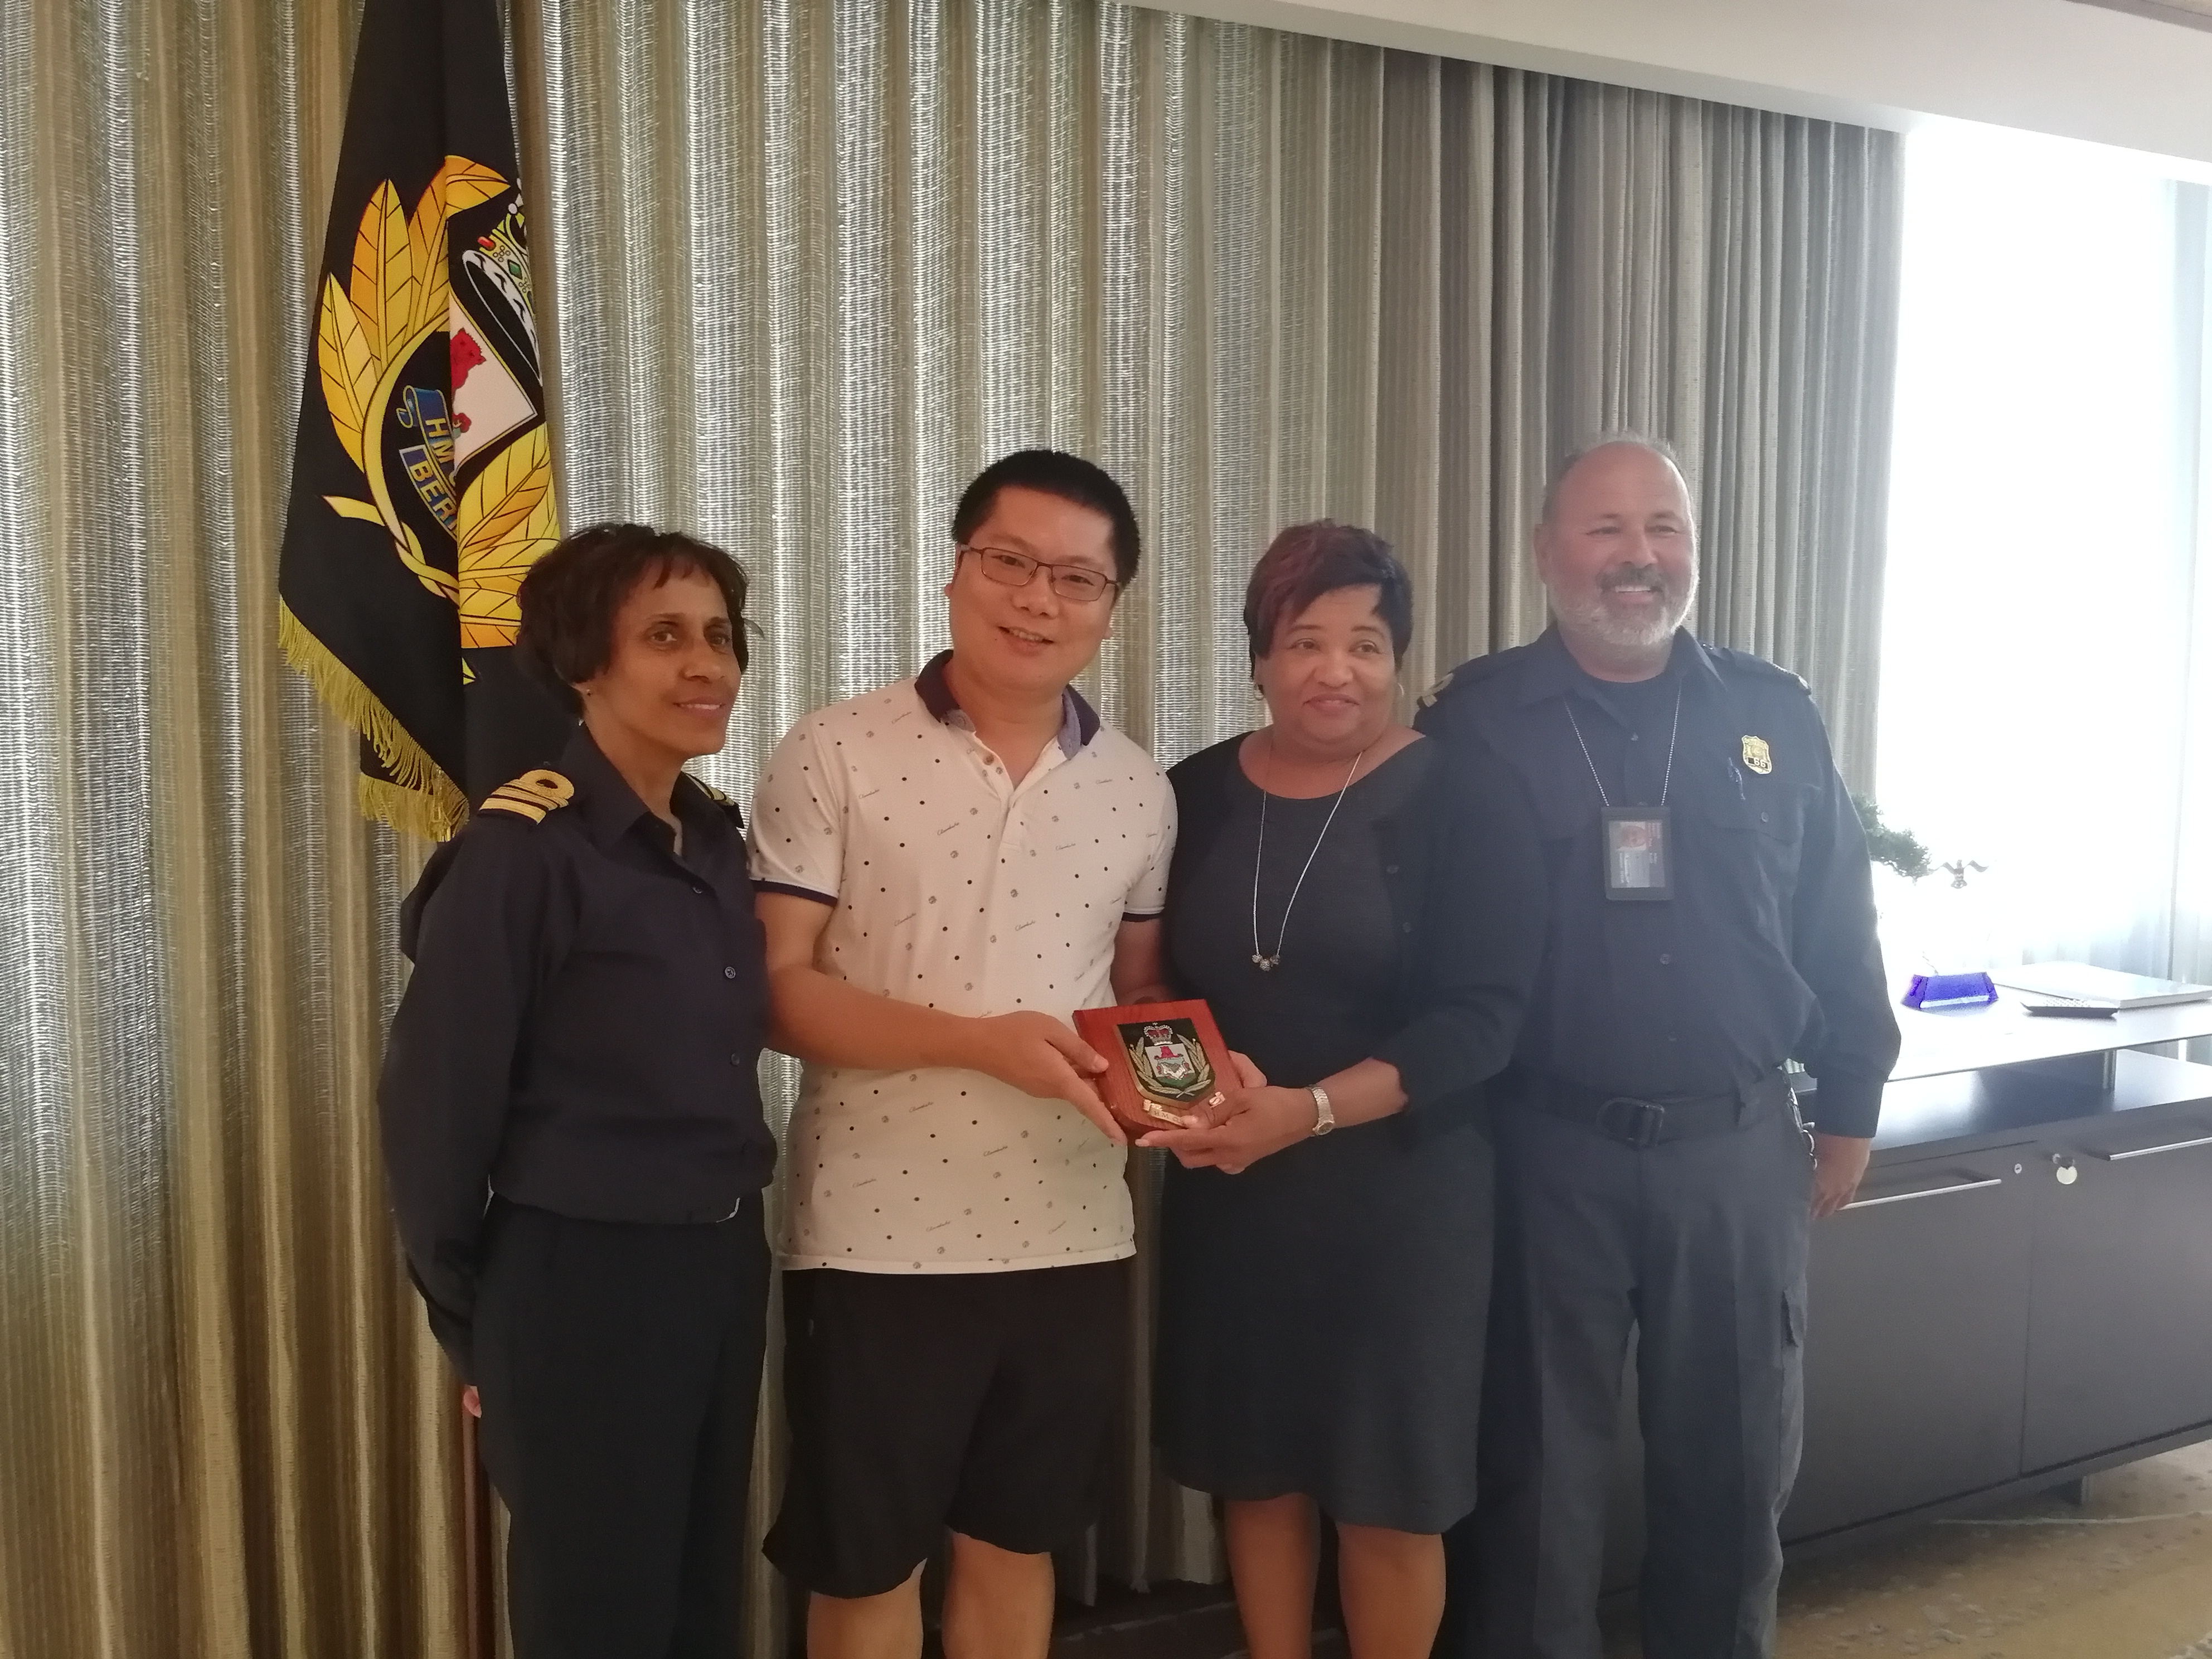 NUCTECH's Engineer Feng Jie was Awarded a Medal by Bermuda Customs